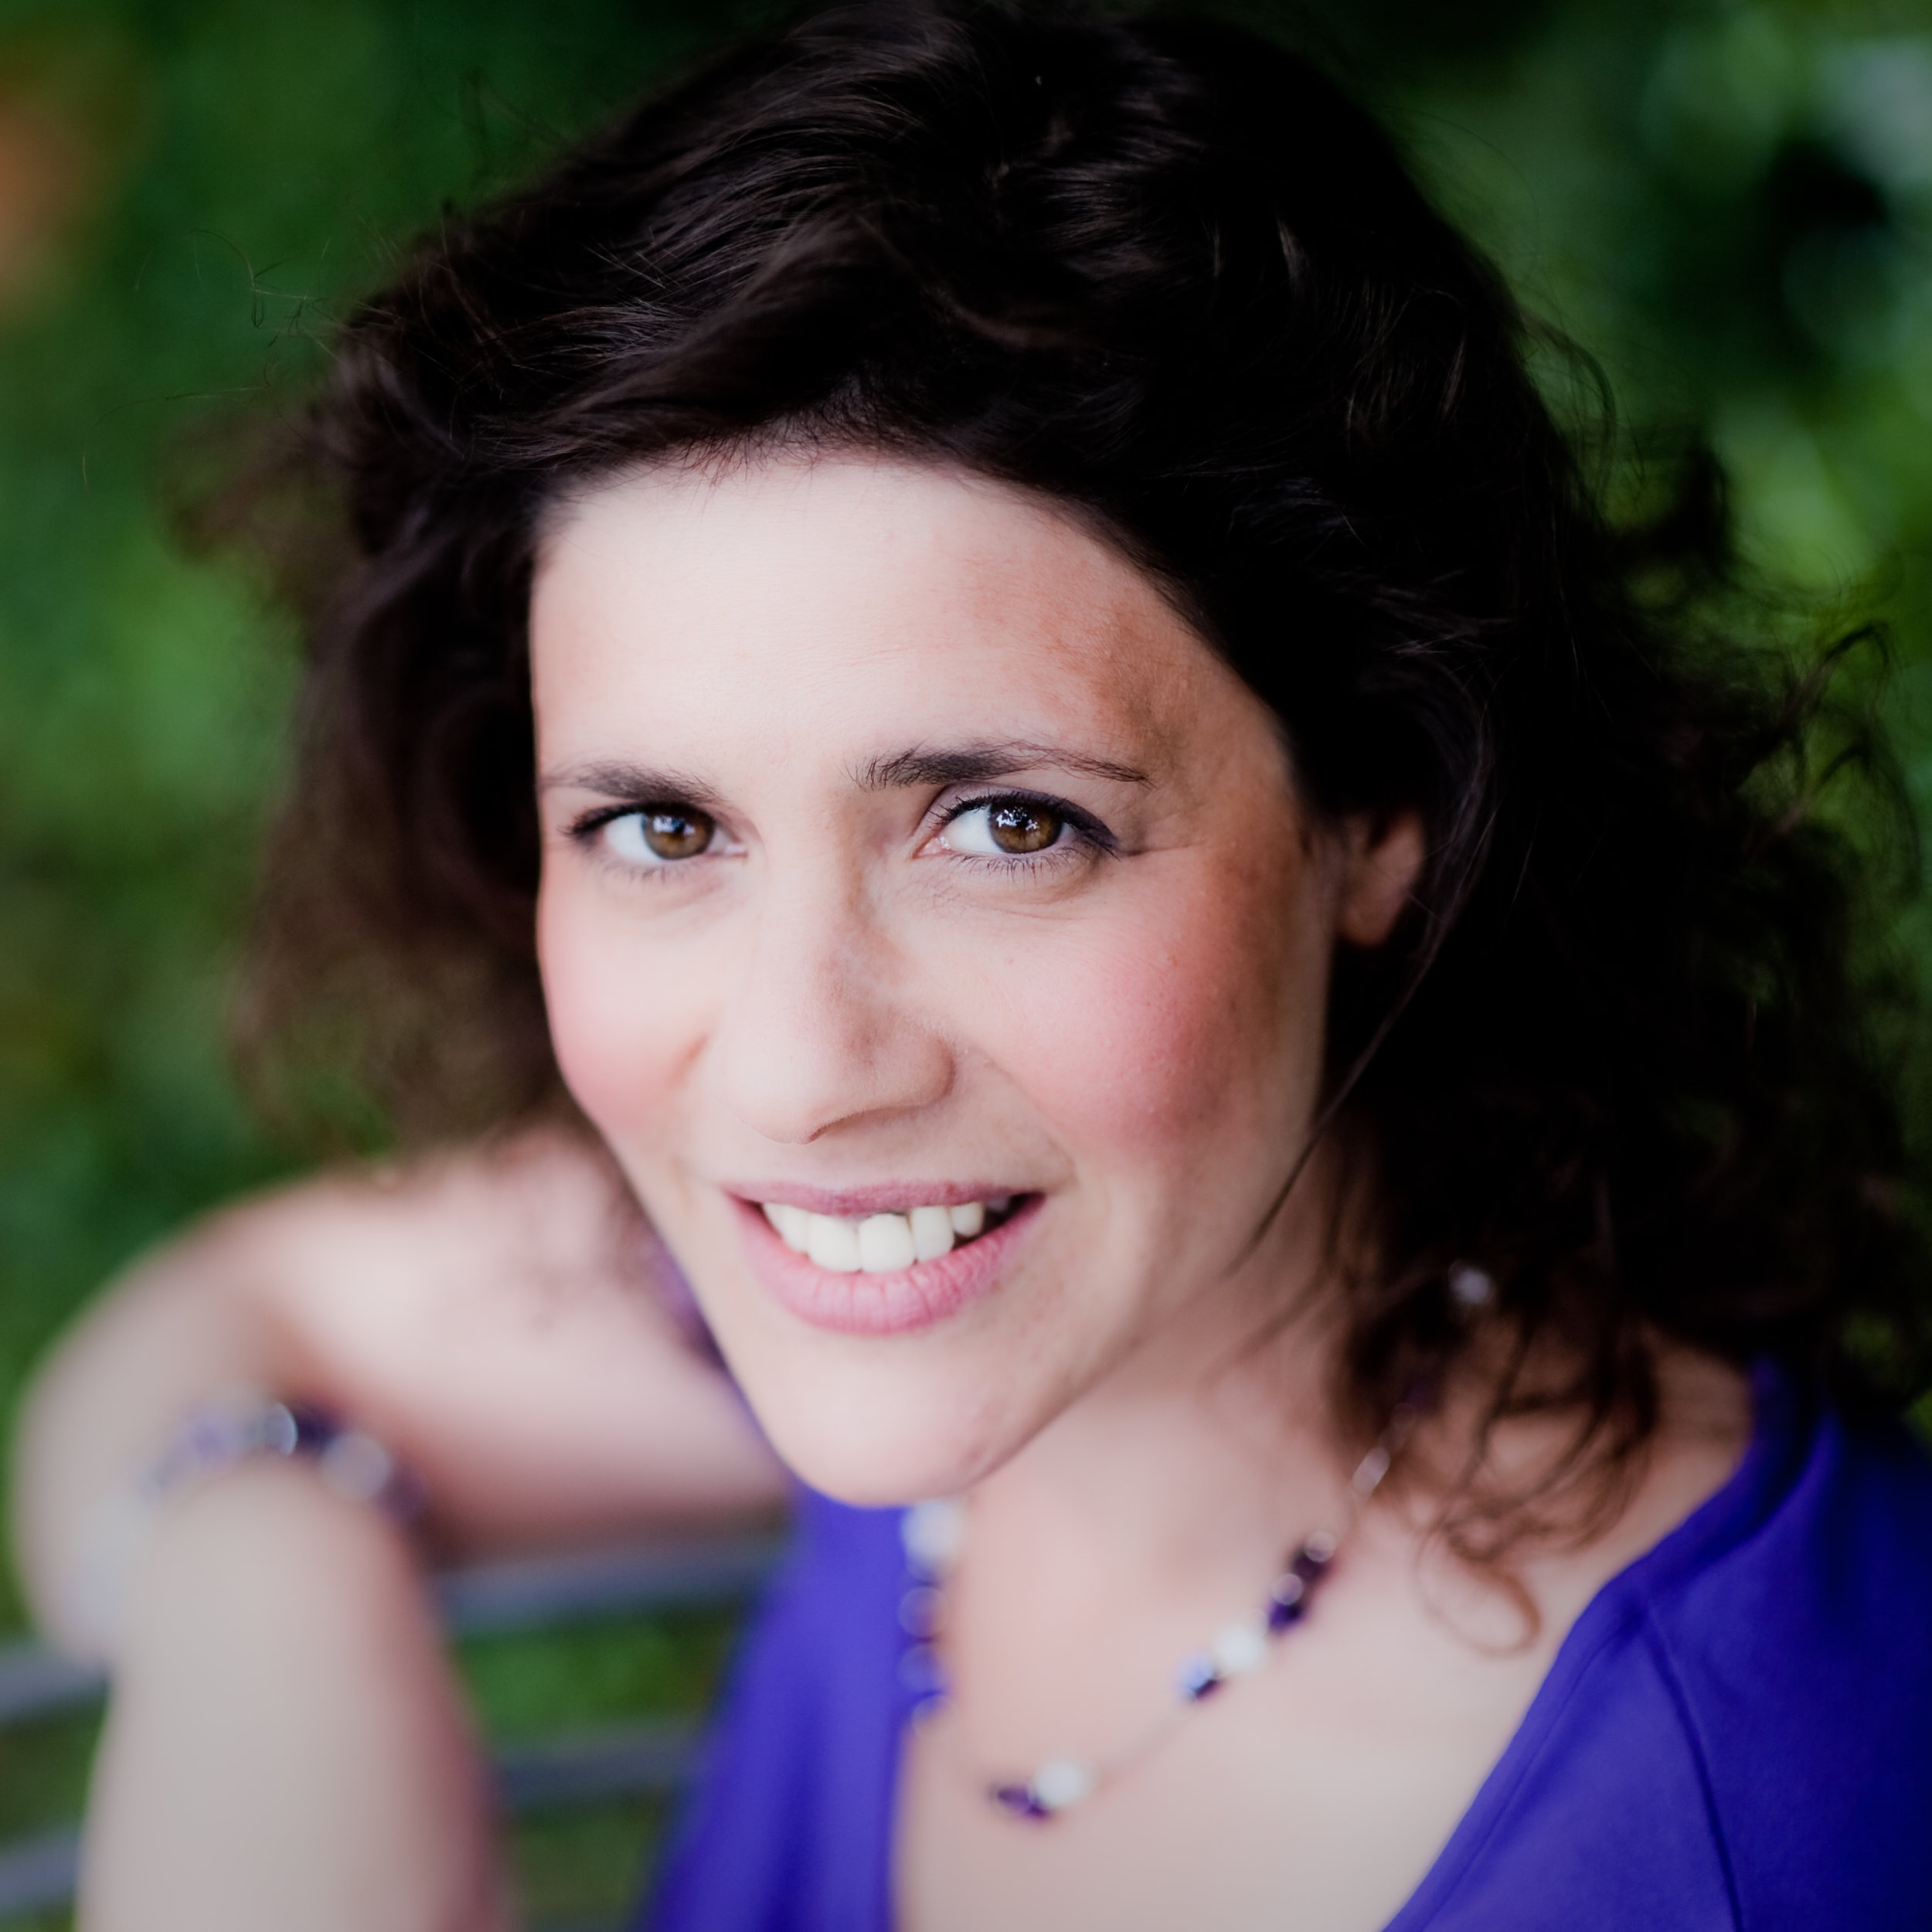 naomi martell-bundock - Naomi is an NLP Master Practitioner, Higher Self-Healing Master Practitioner, Master Coach, and a practitioner in Egyptian Healing and Between Lives Soul Connection. She can be contacted on change@coresense.co.uk and her website is www.coresense.co.uk